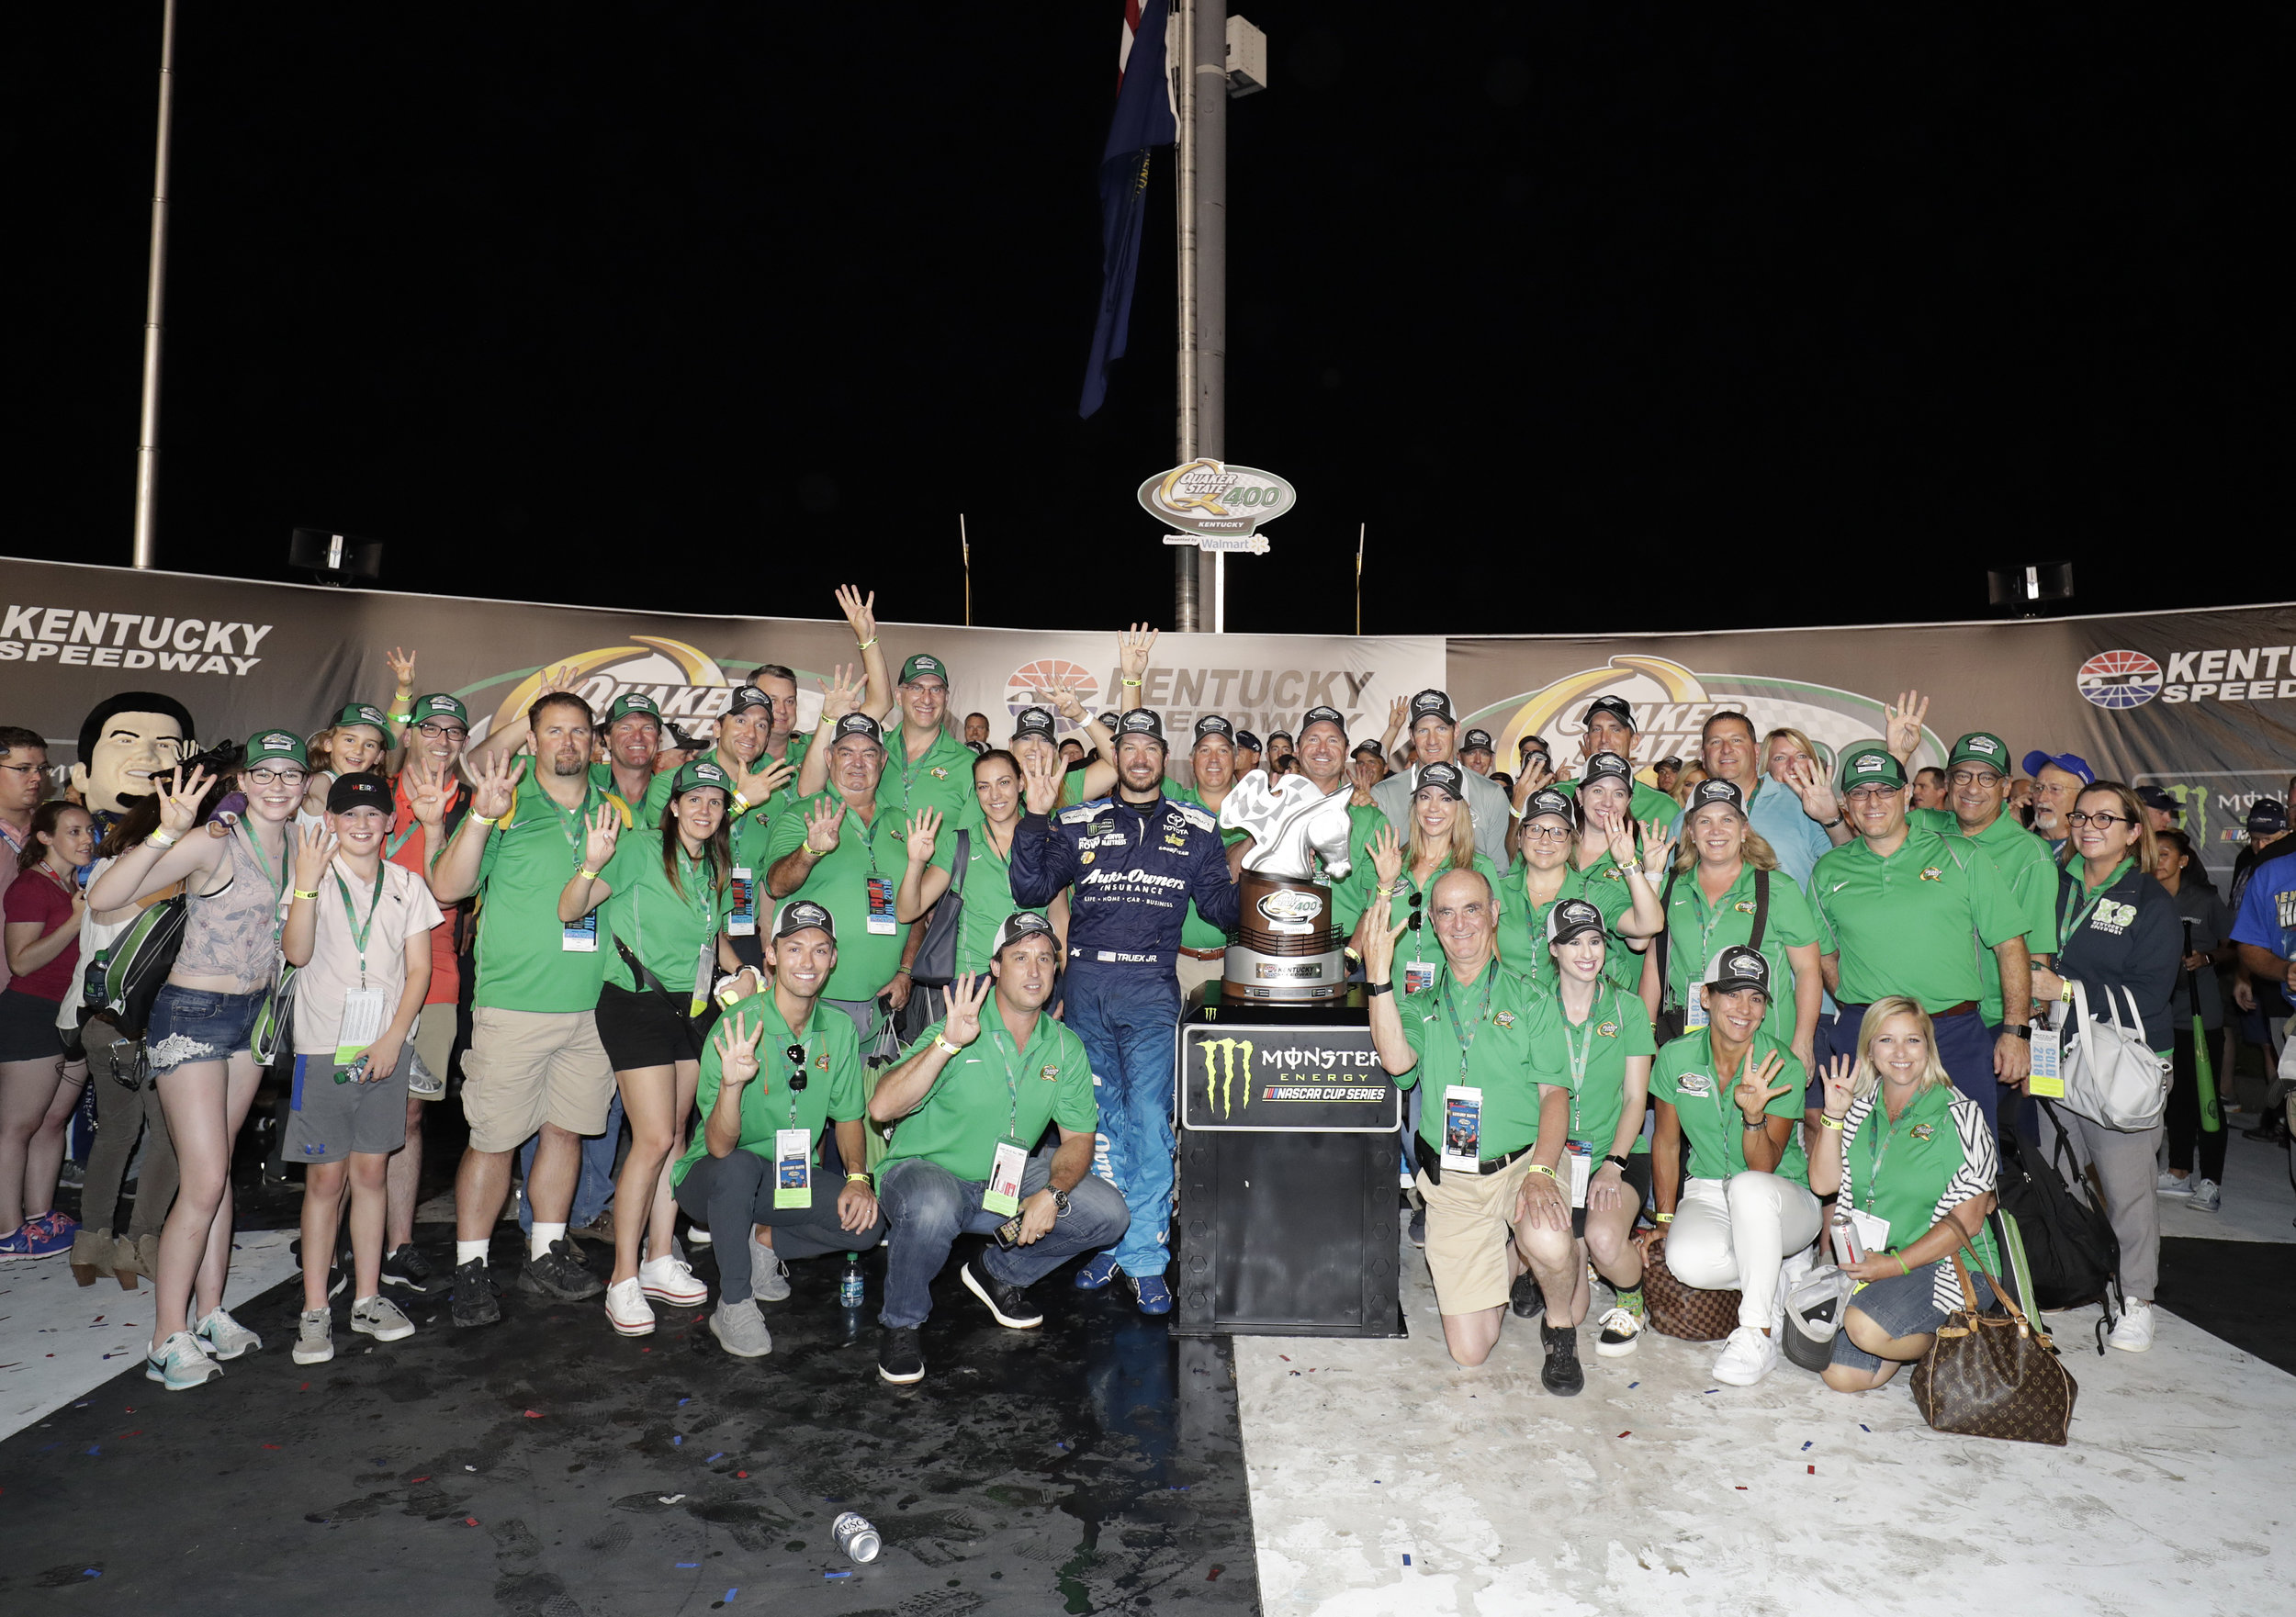 Celebrating in Victory Lane after a fantastic race!